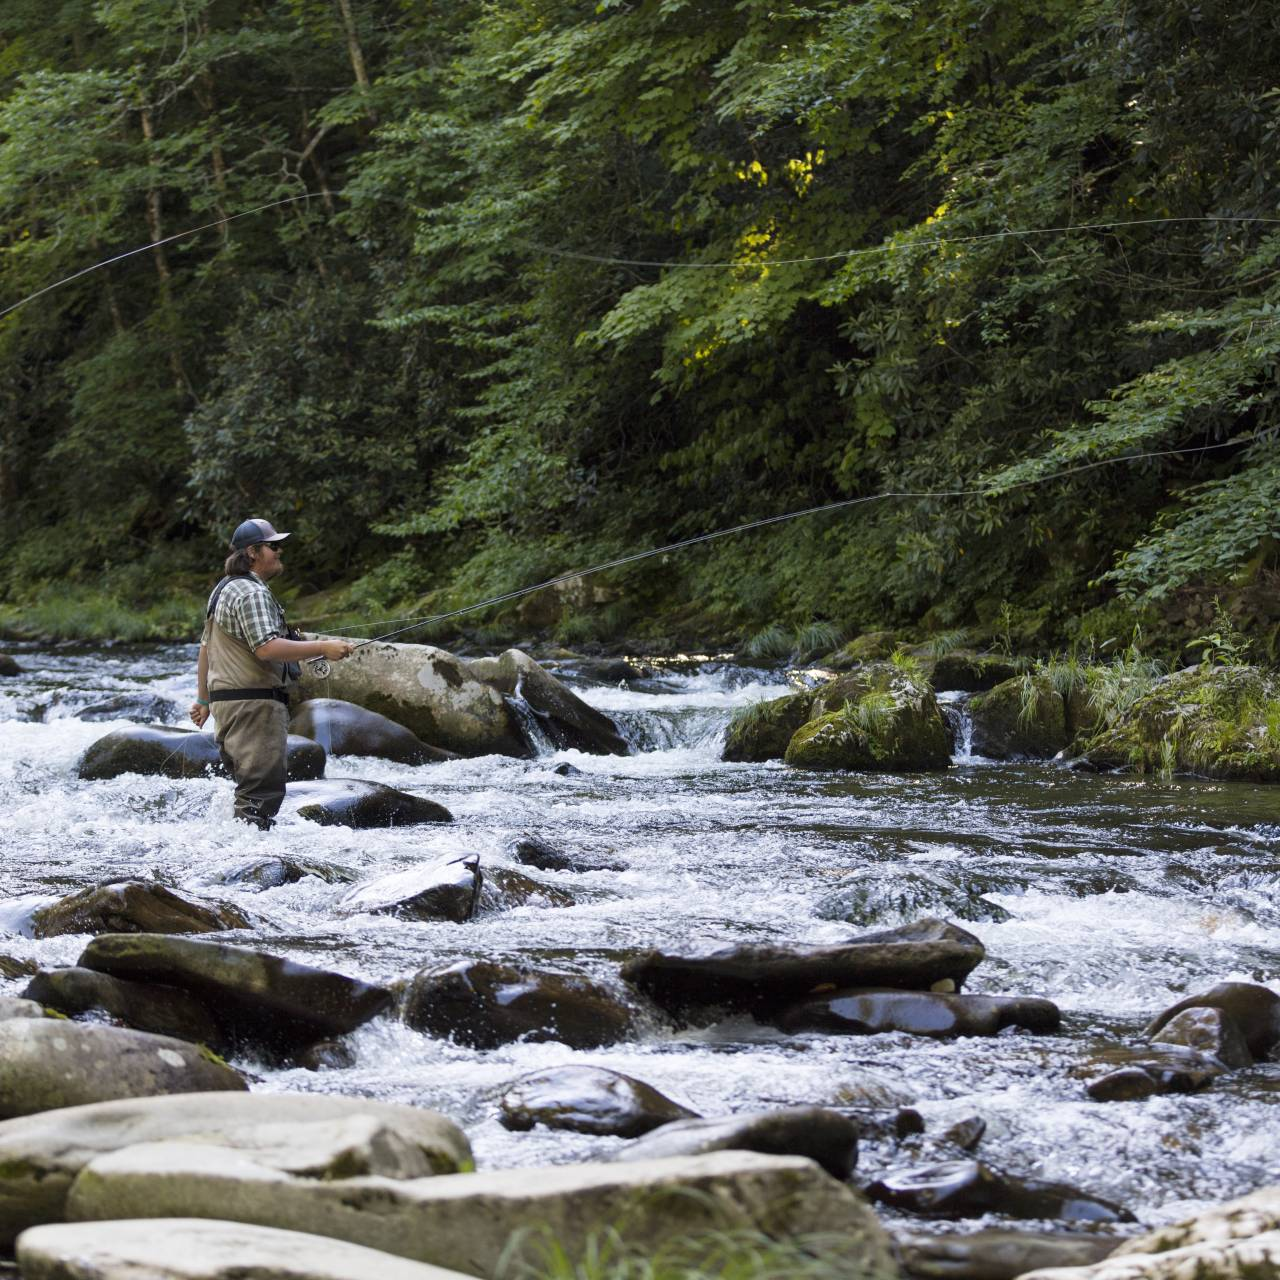 100 fish days tips on fishing cherokee by michael bradley for Fly fishing cherokee nc